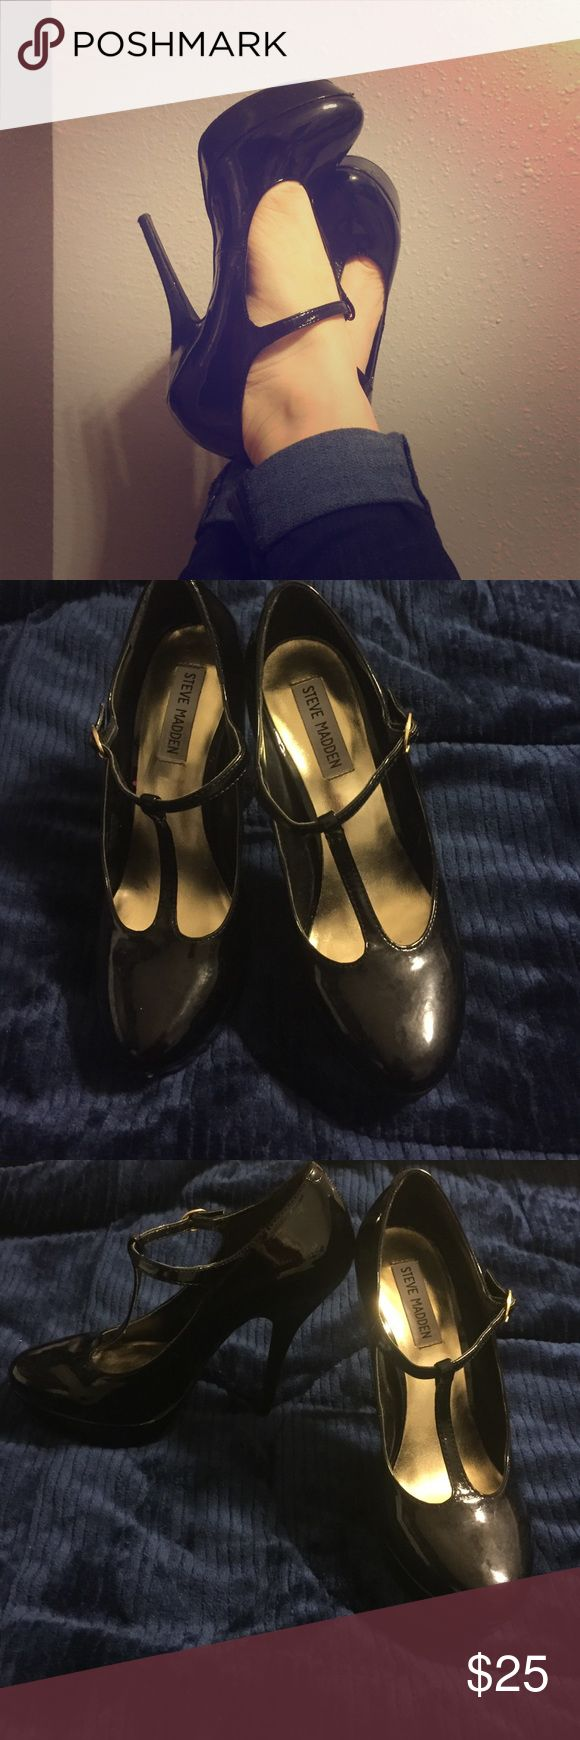 Steve Madden stilettos size 7.5 FABulous heels. Black patent Steve Maddens 👠 These look amazing and sexy on, just a bit too small for me ☹️ Steve Madden Shoes Heels